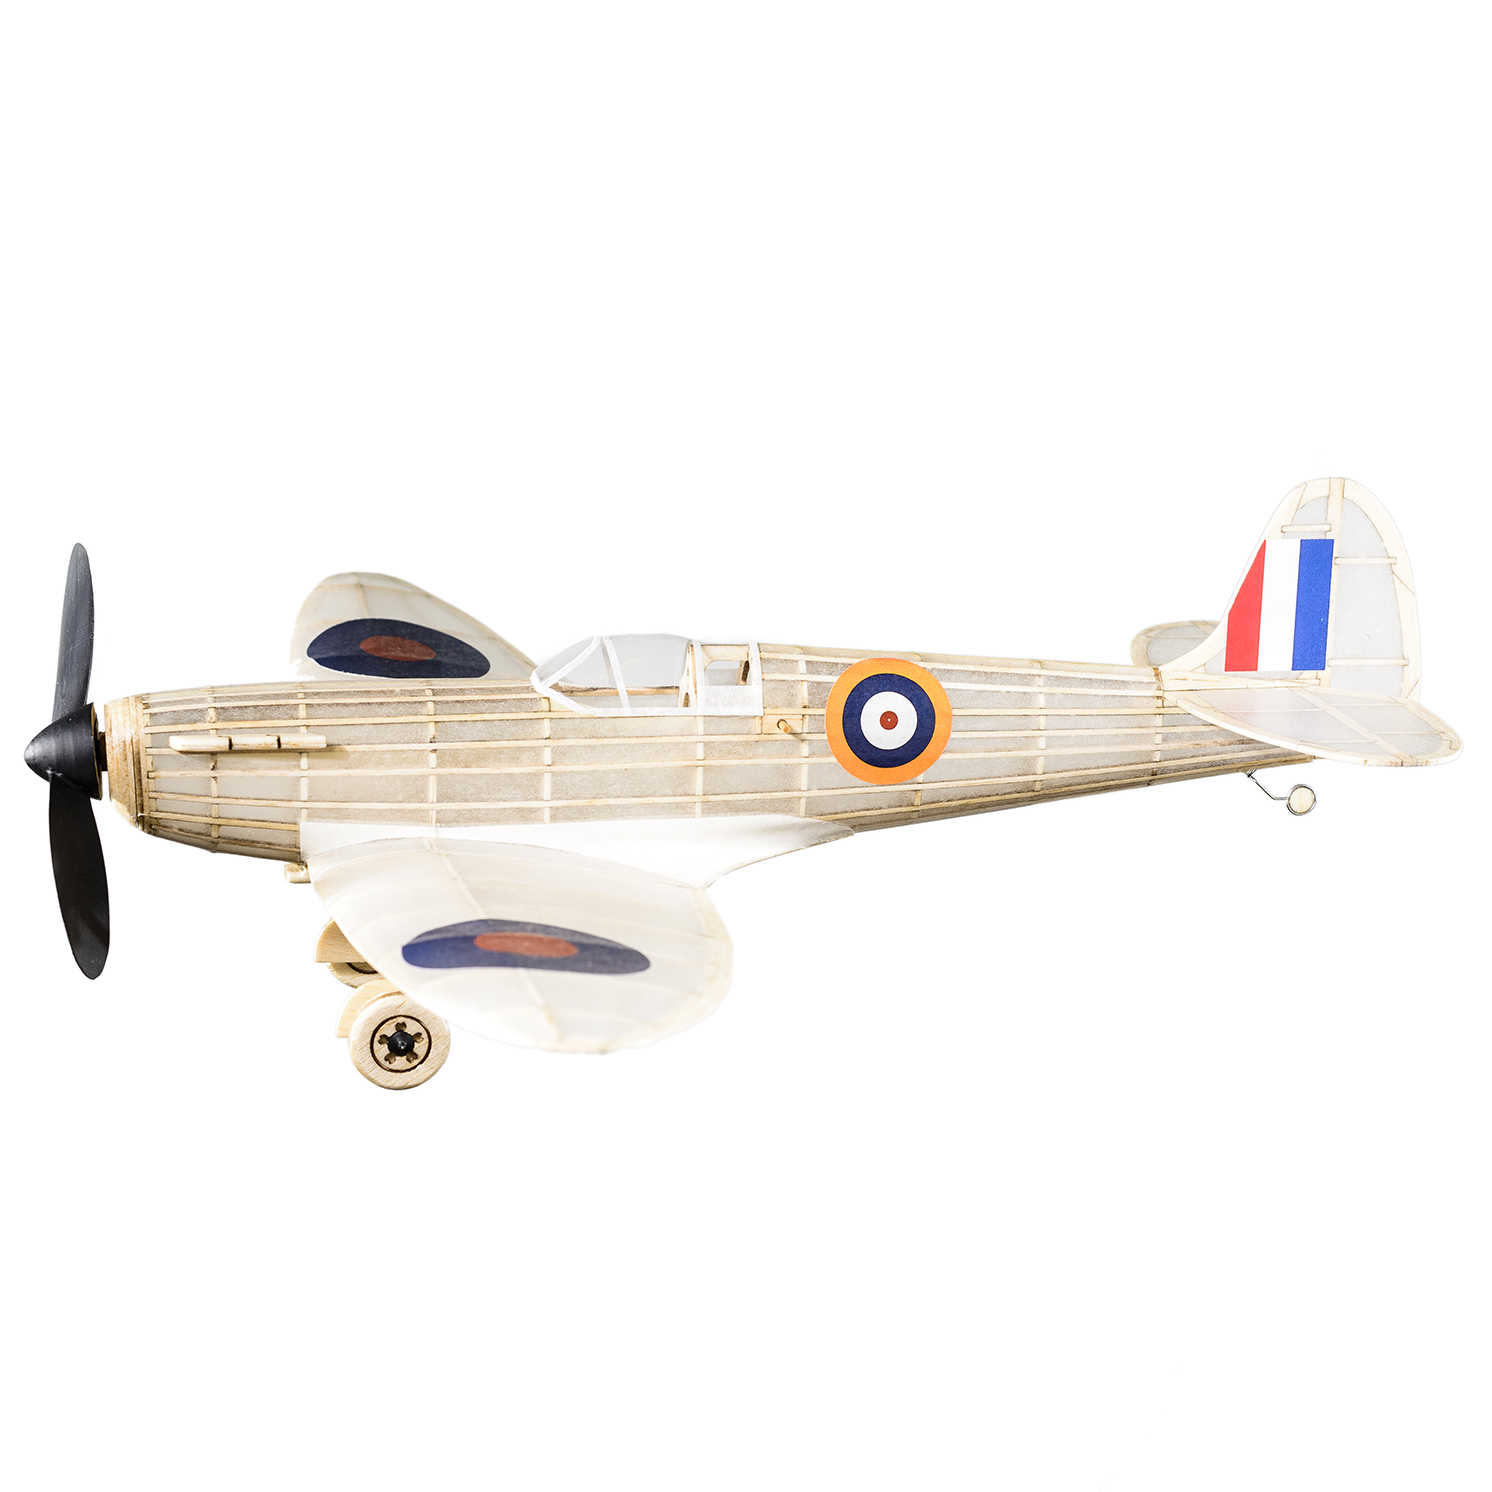 The Vintage Model Company – Supermarine Spitfire Balsa Wood Kit